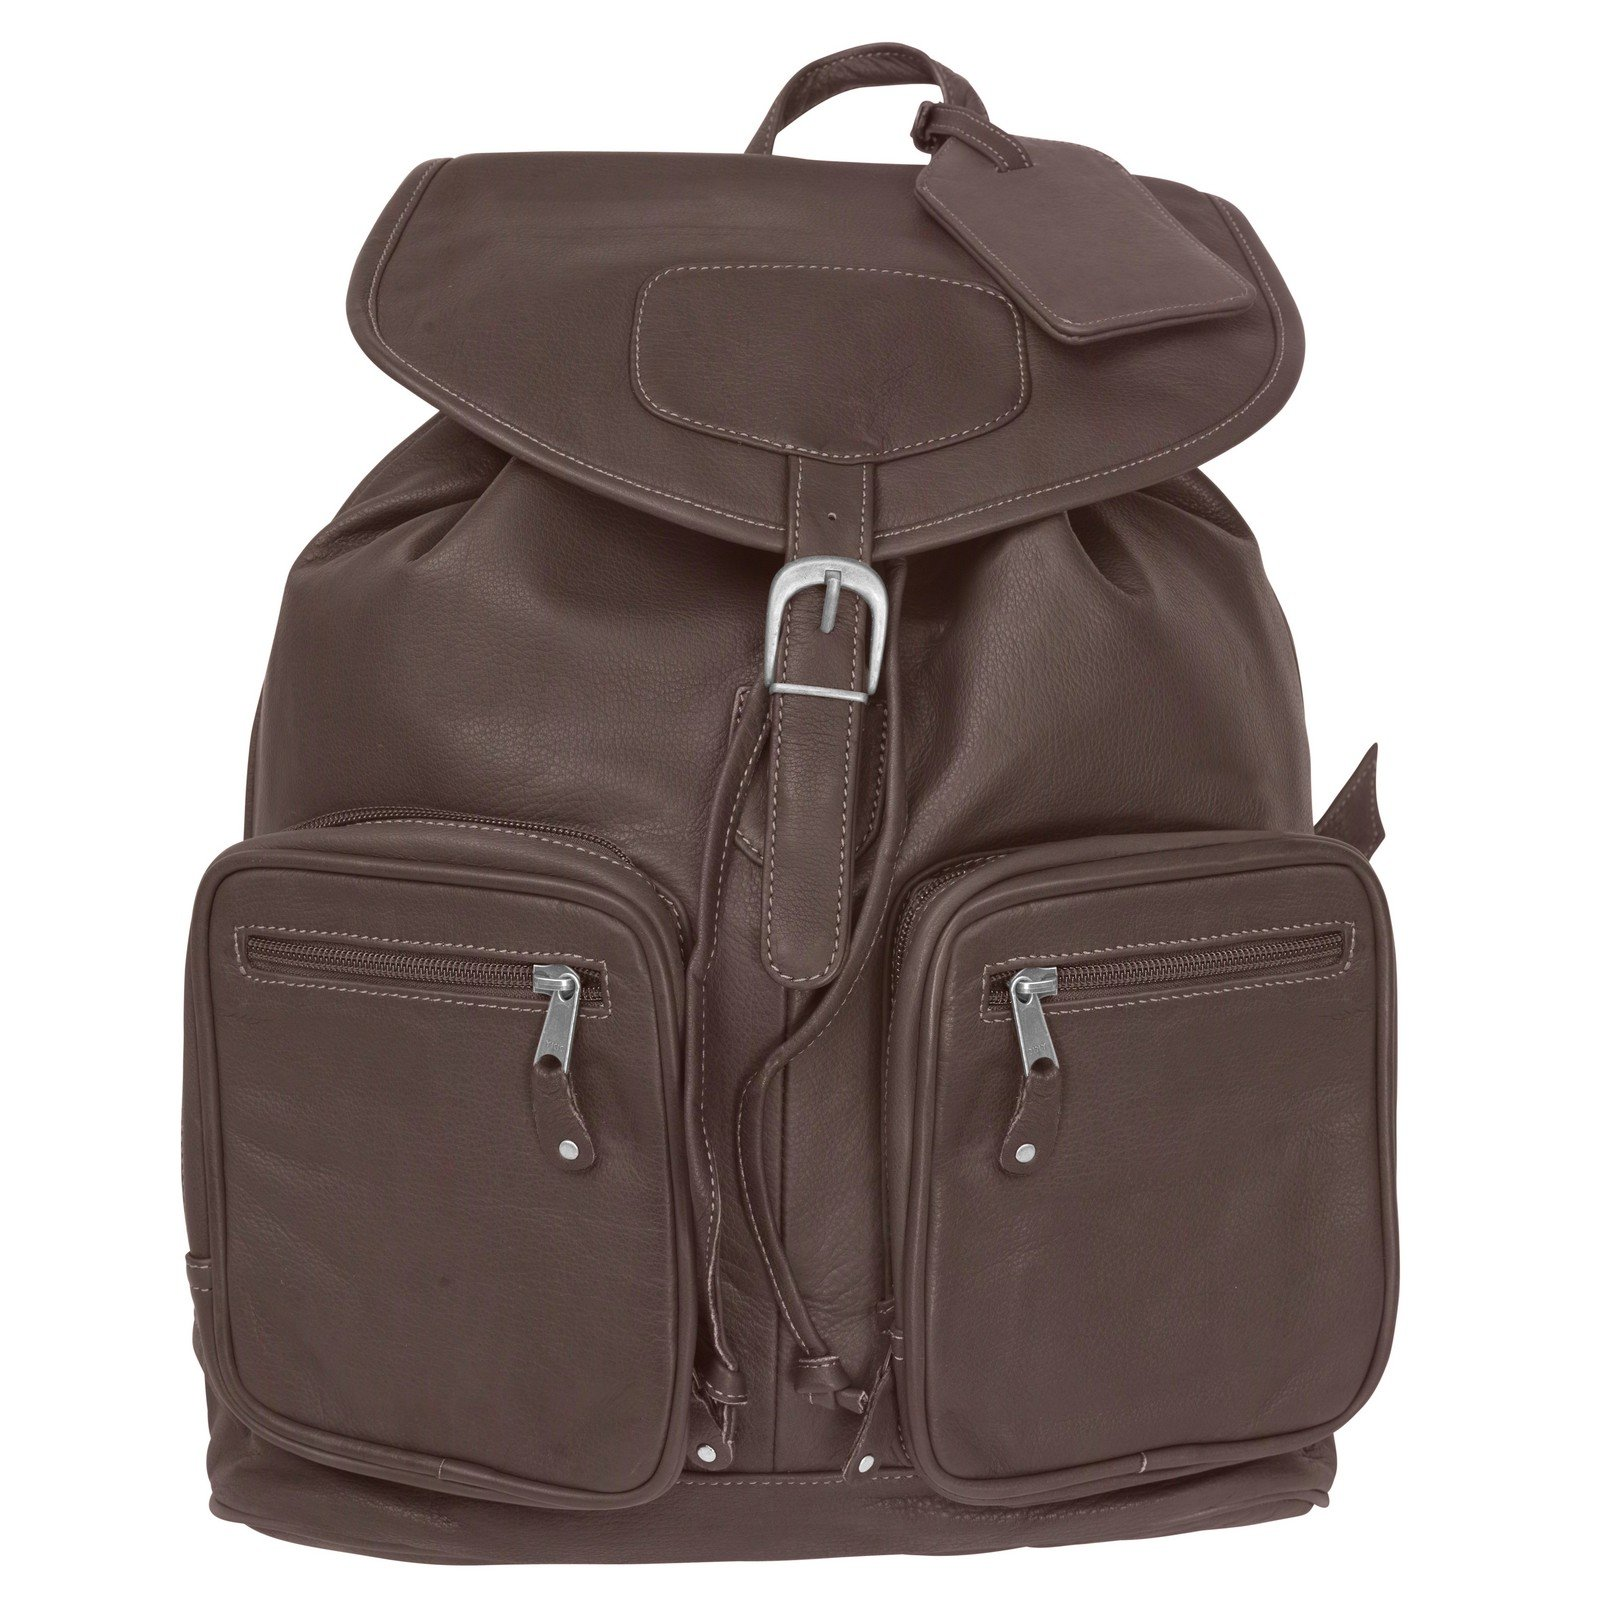 Canyon Outback Grand Canyon Leather Computer Backpack, Brown, One Size